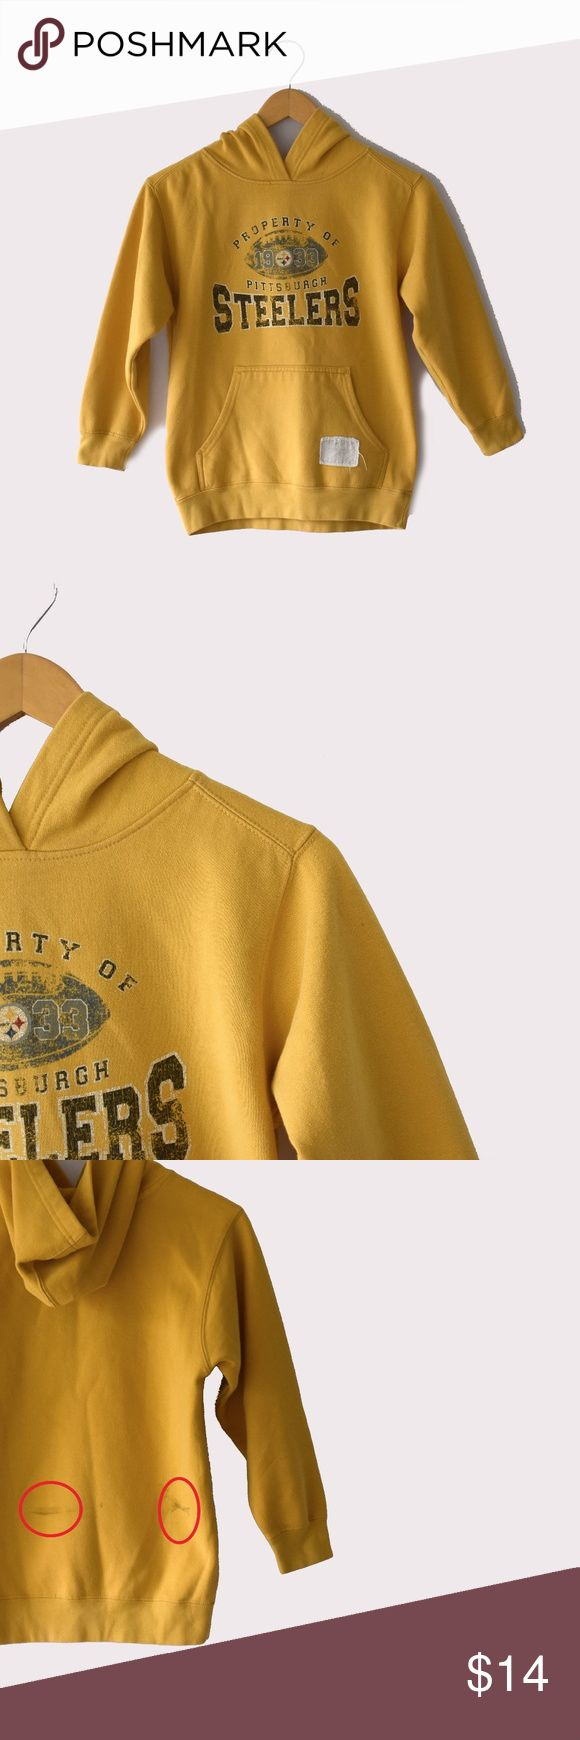 """NFL Steelers Hoodie ( discounted for imperfection) Reebok NFL Vintage Collection 